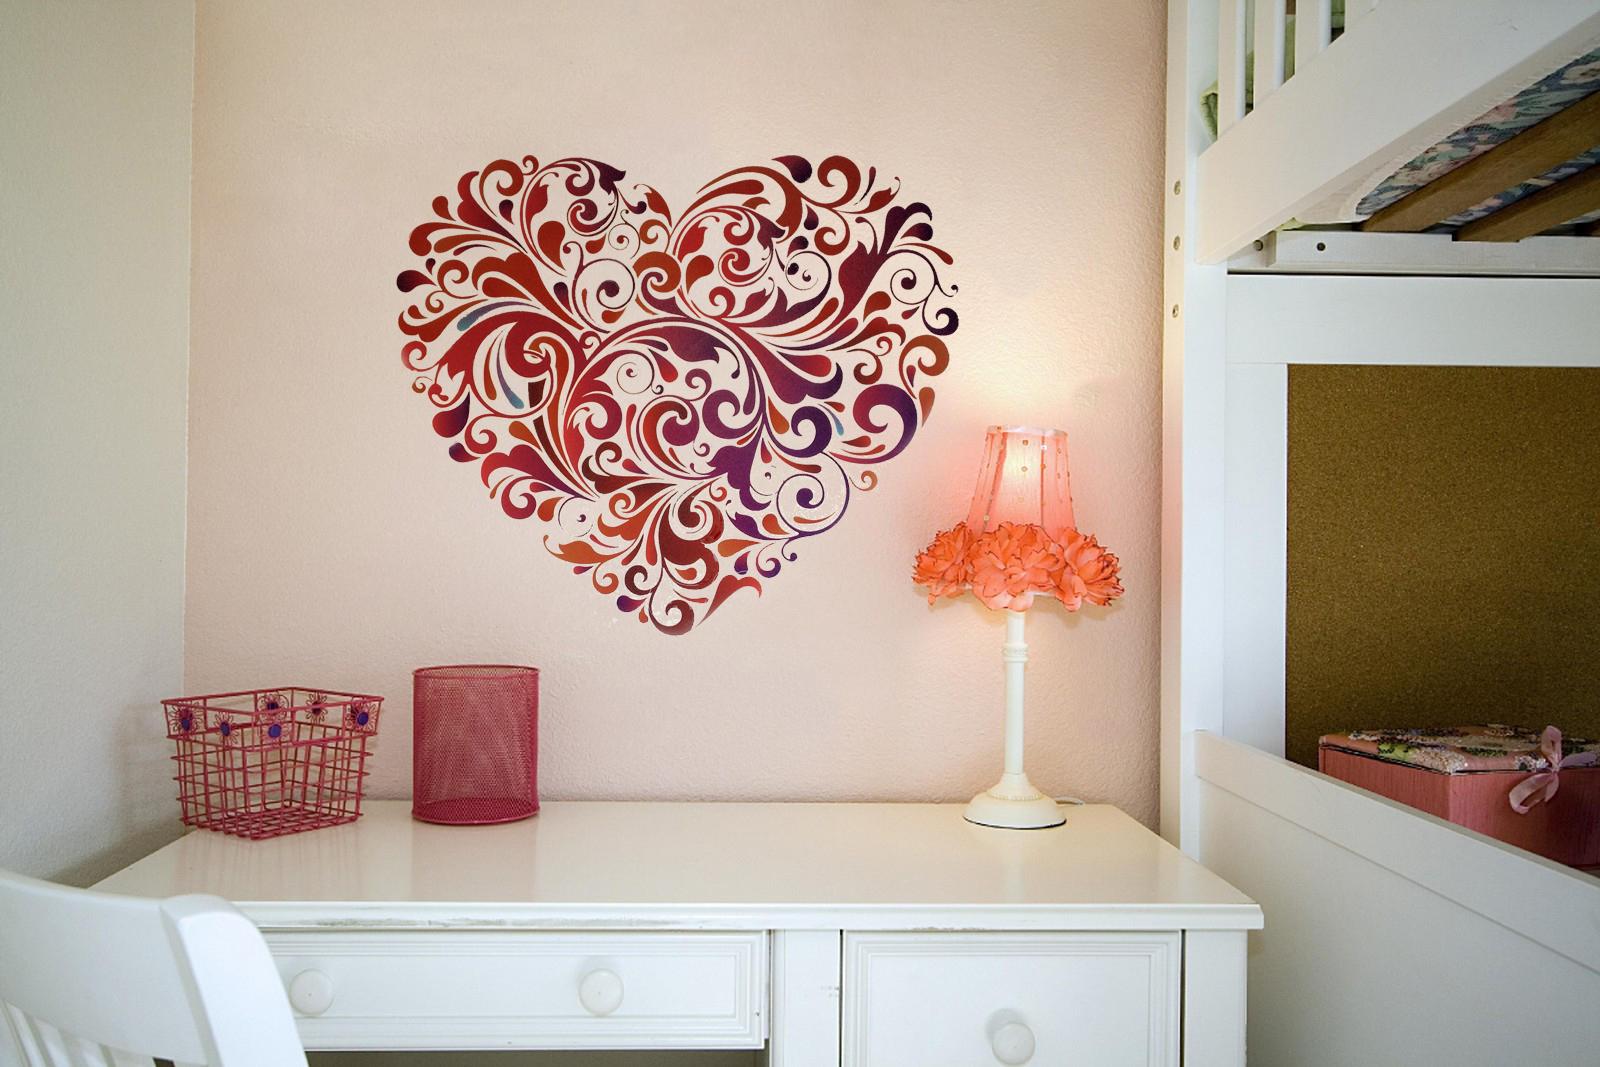 Wall Designs Make Your Home Beautiful With Unique Wall Decor